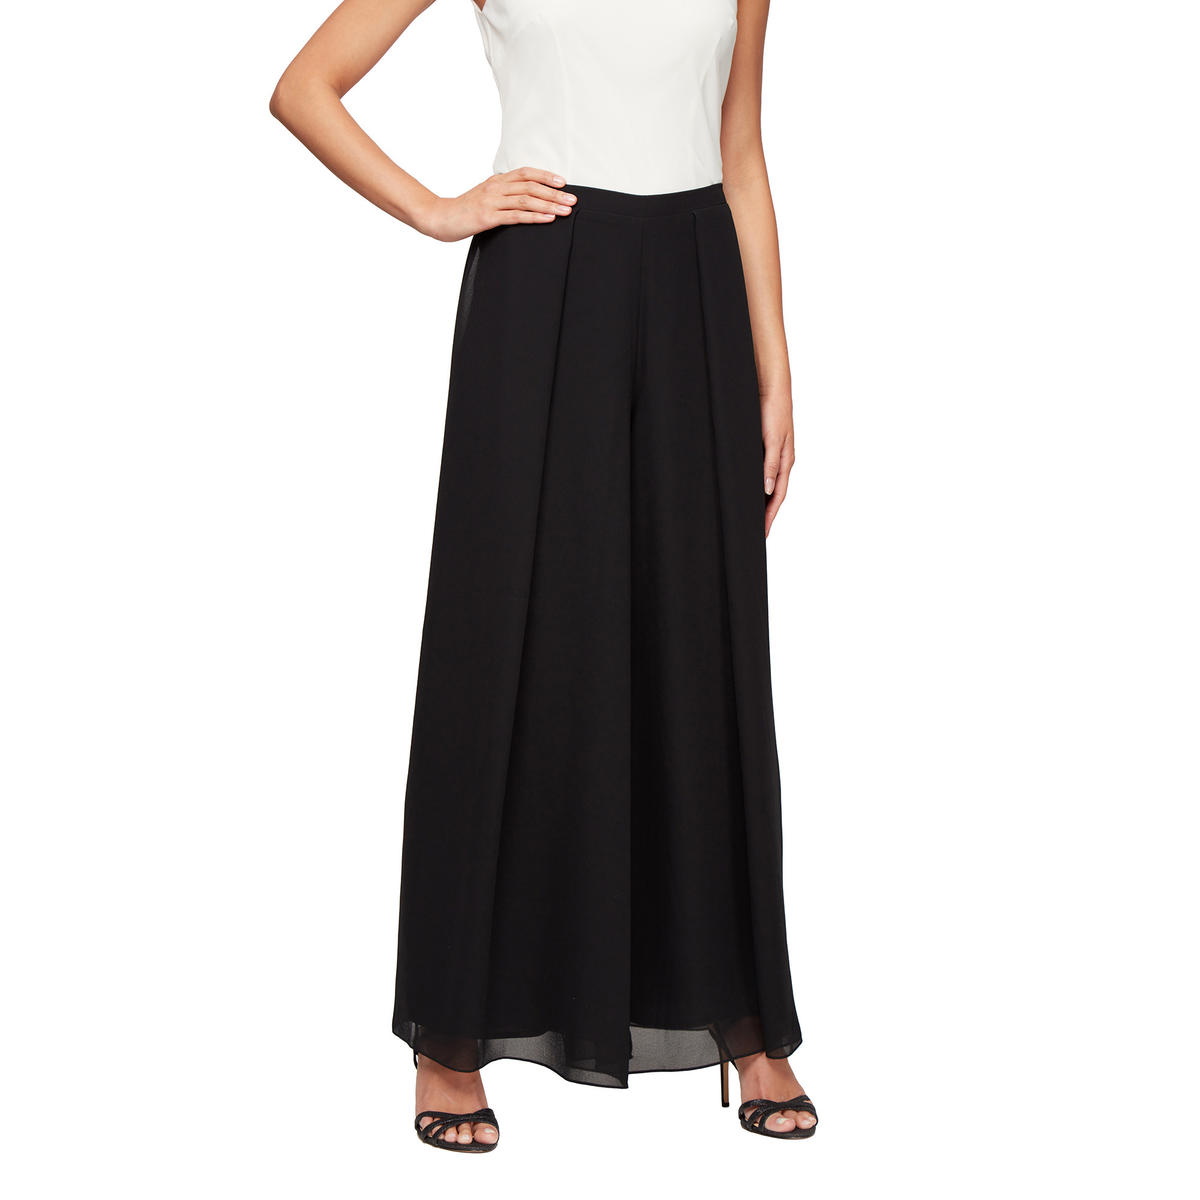 ALEX APPAREL GROUP INC - Chiffon Palazzo Pants